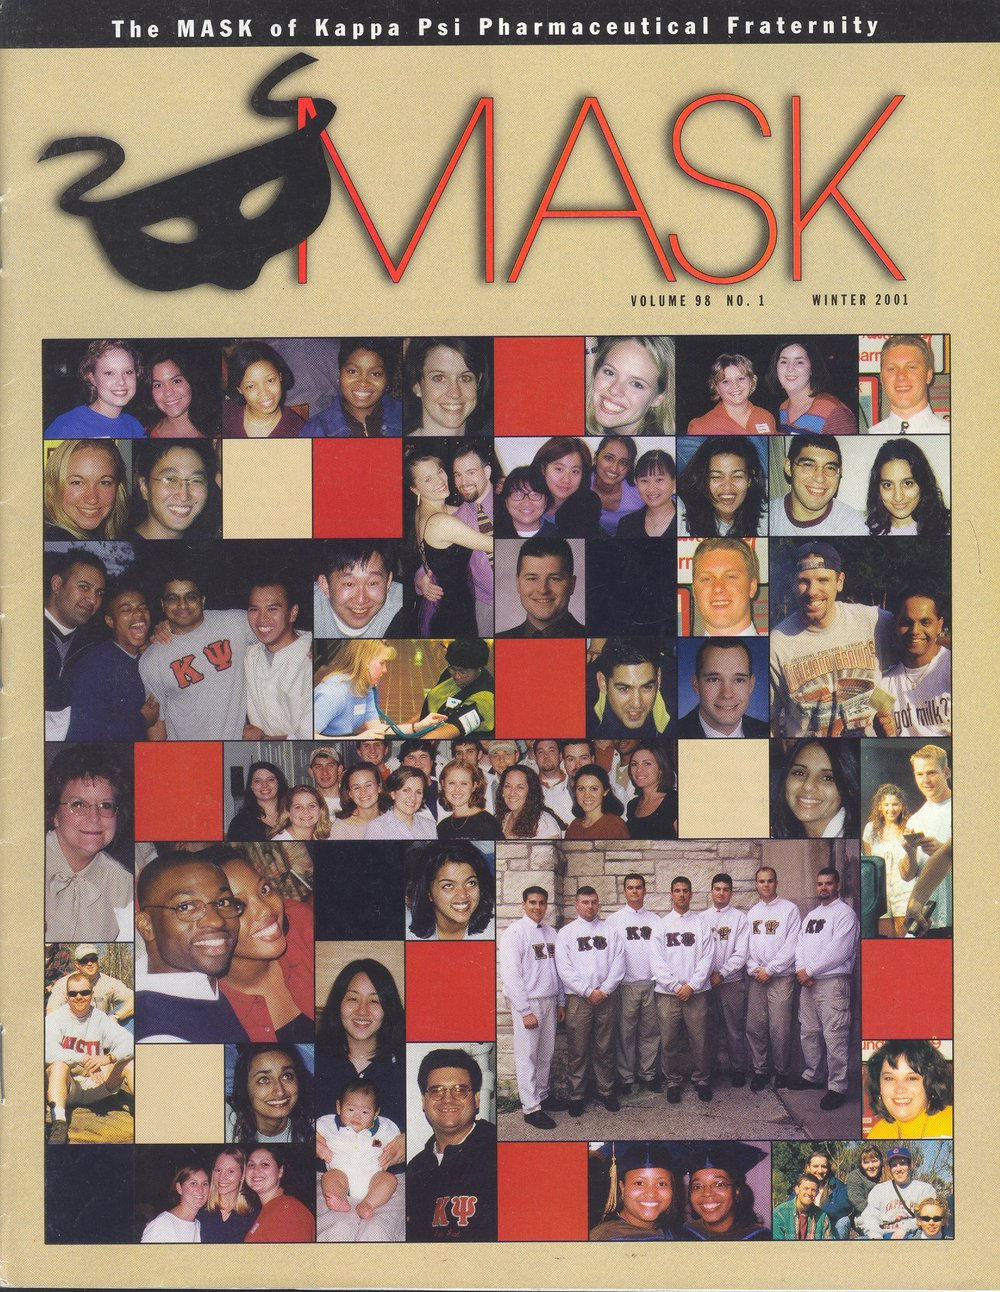 mask_cover_98-1_2001_win.jpg